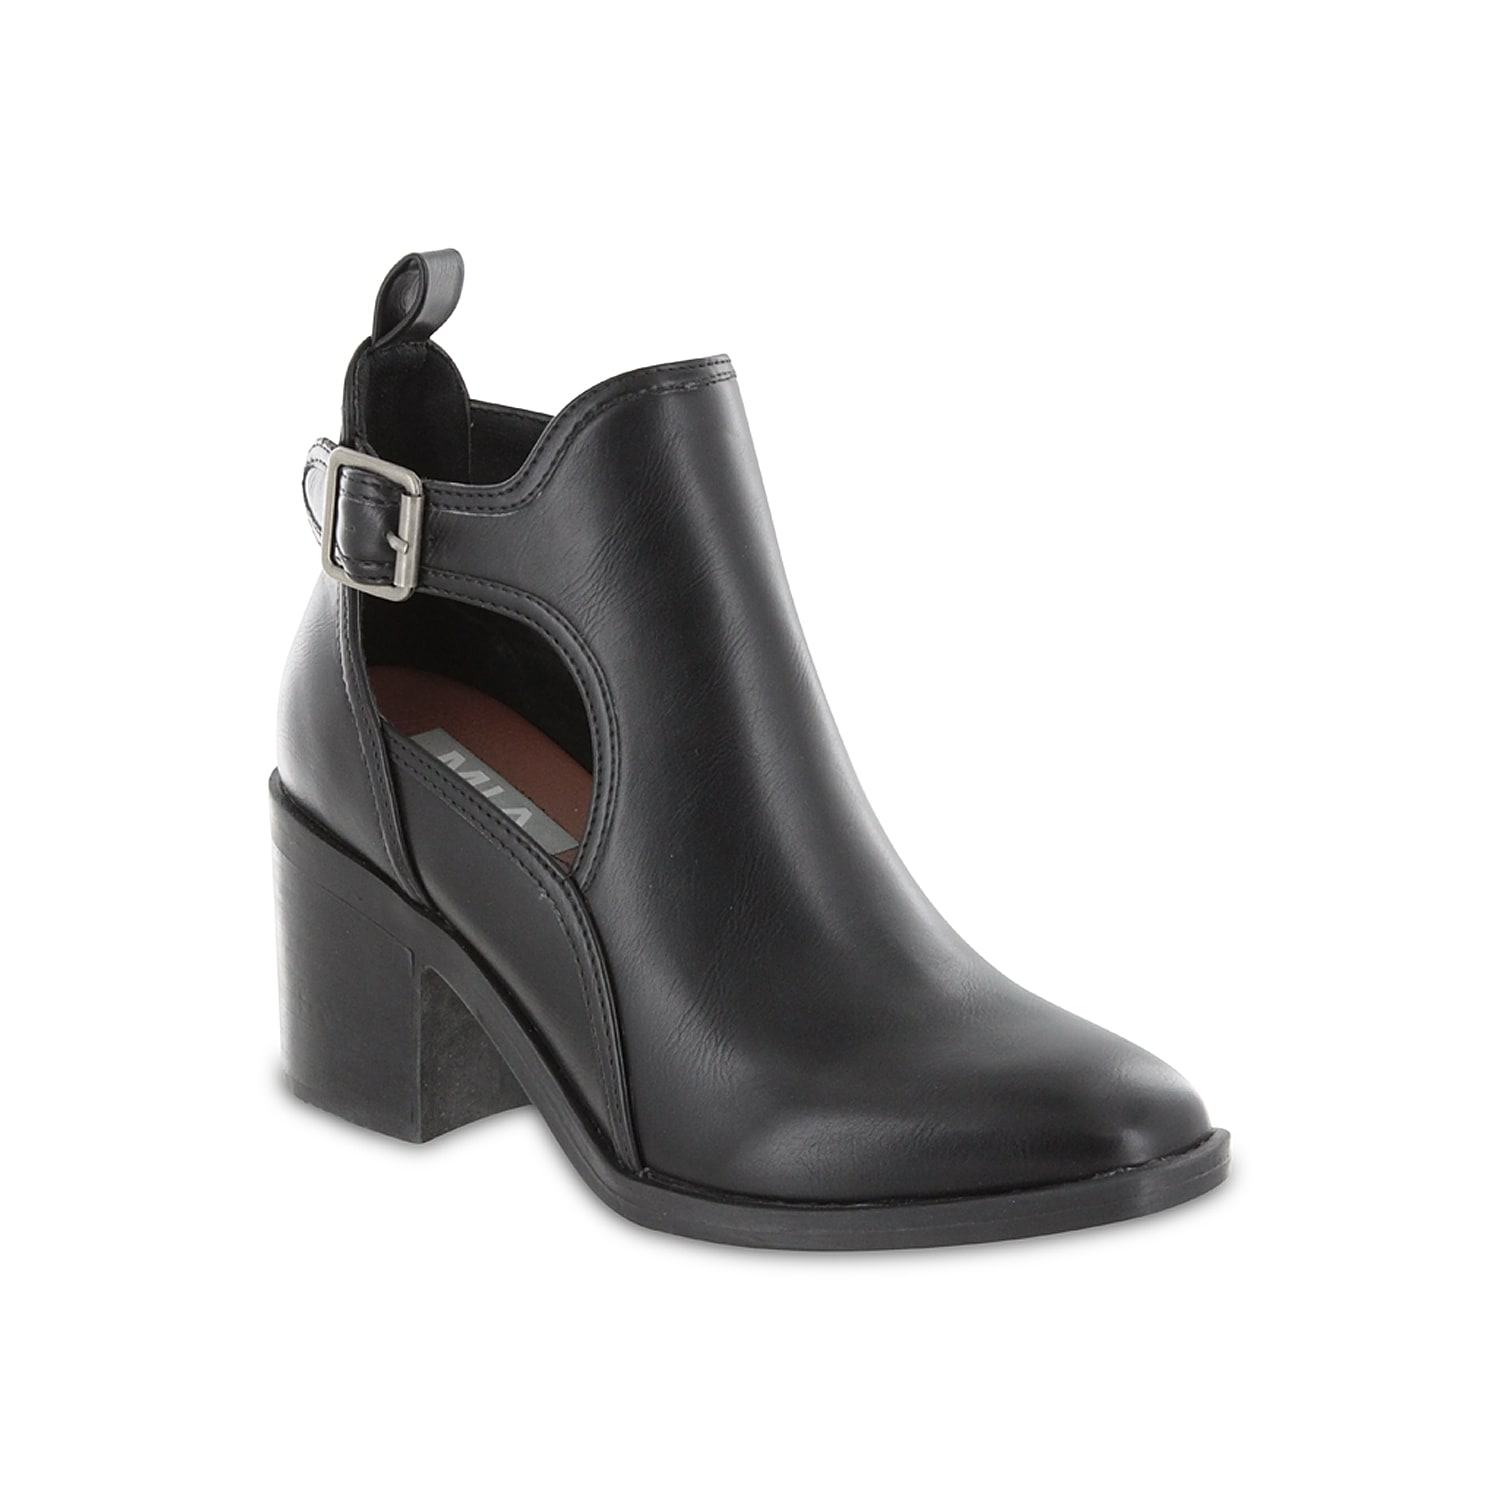 Bring a fierce flair to your summer or spring outfit with the Mia Eden bootie. Made of animal printed upper, this bootie showcases side cut-outs and modest block heel that take the style several notches up.